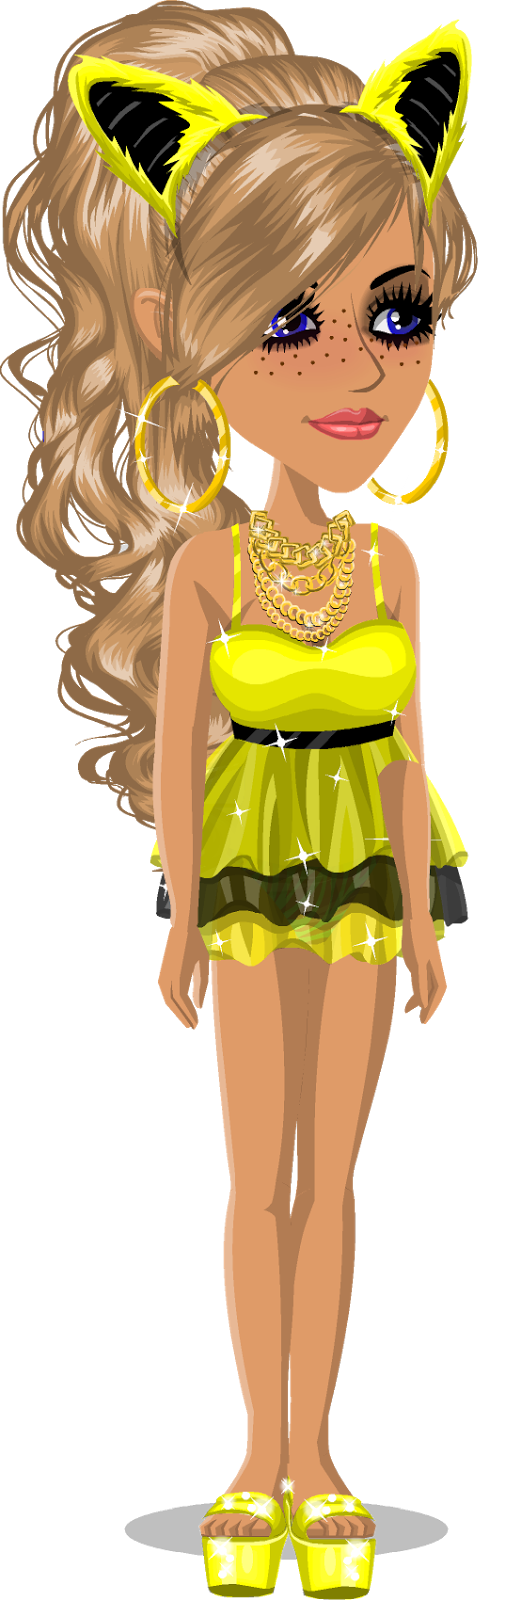 how to look like amvu on msp